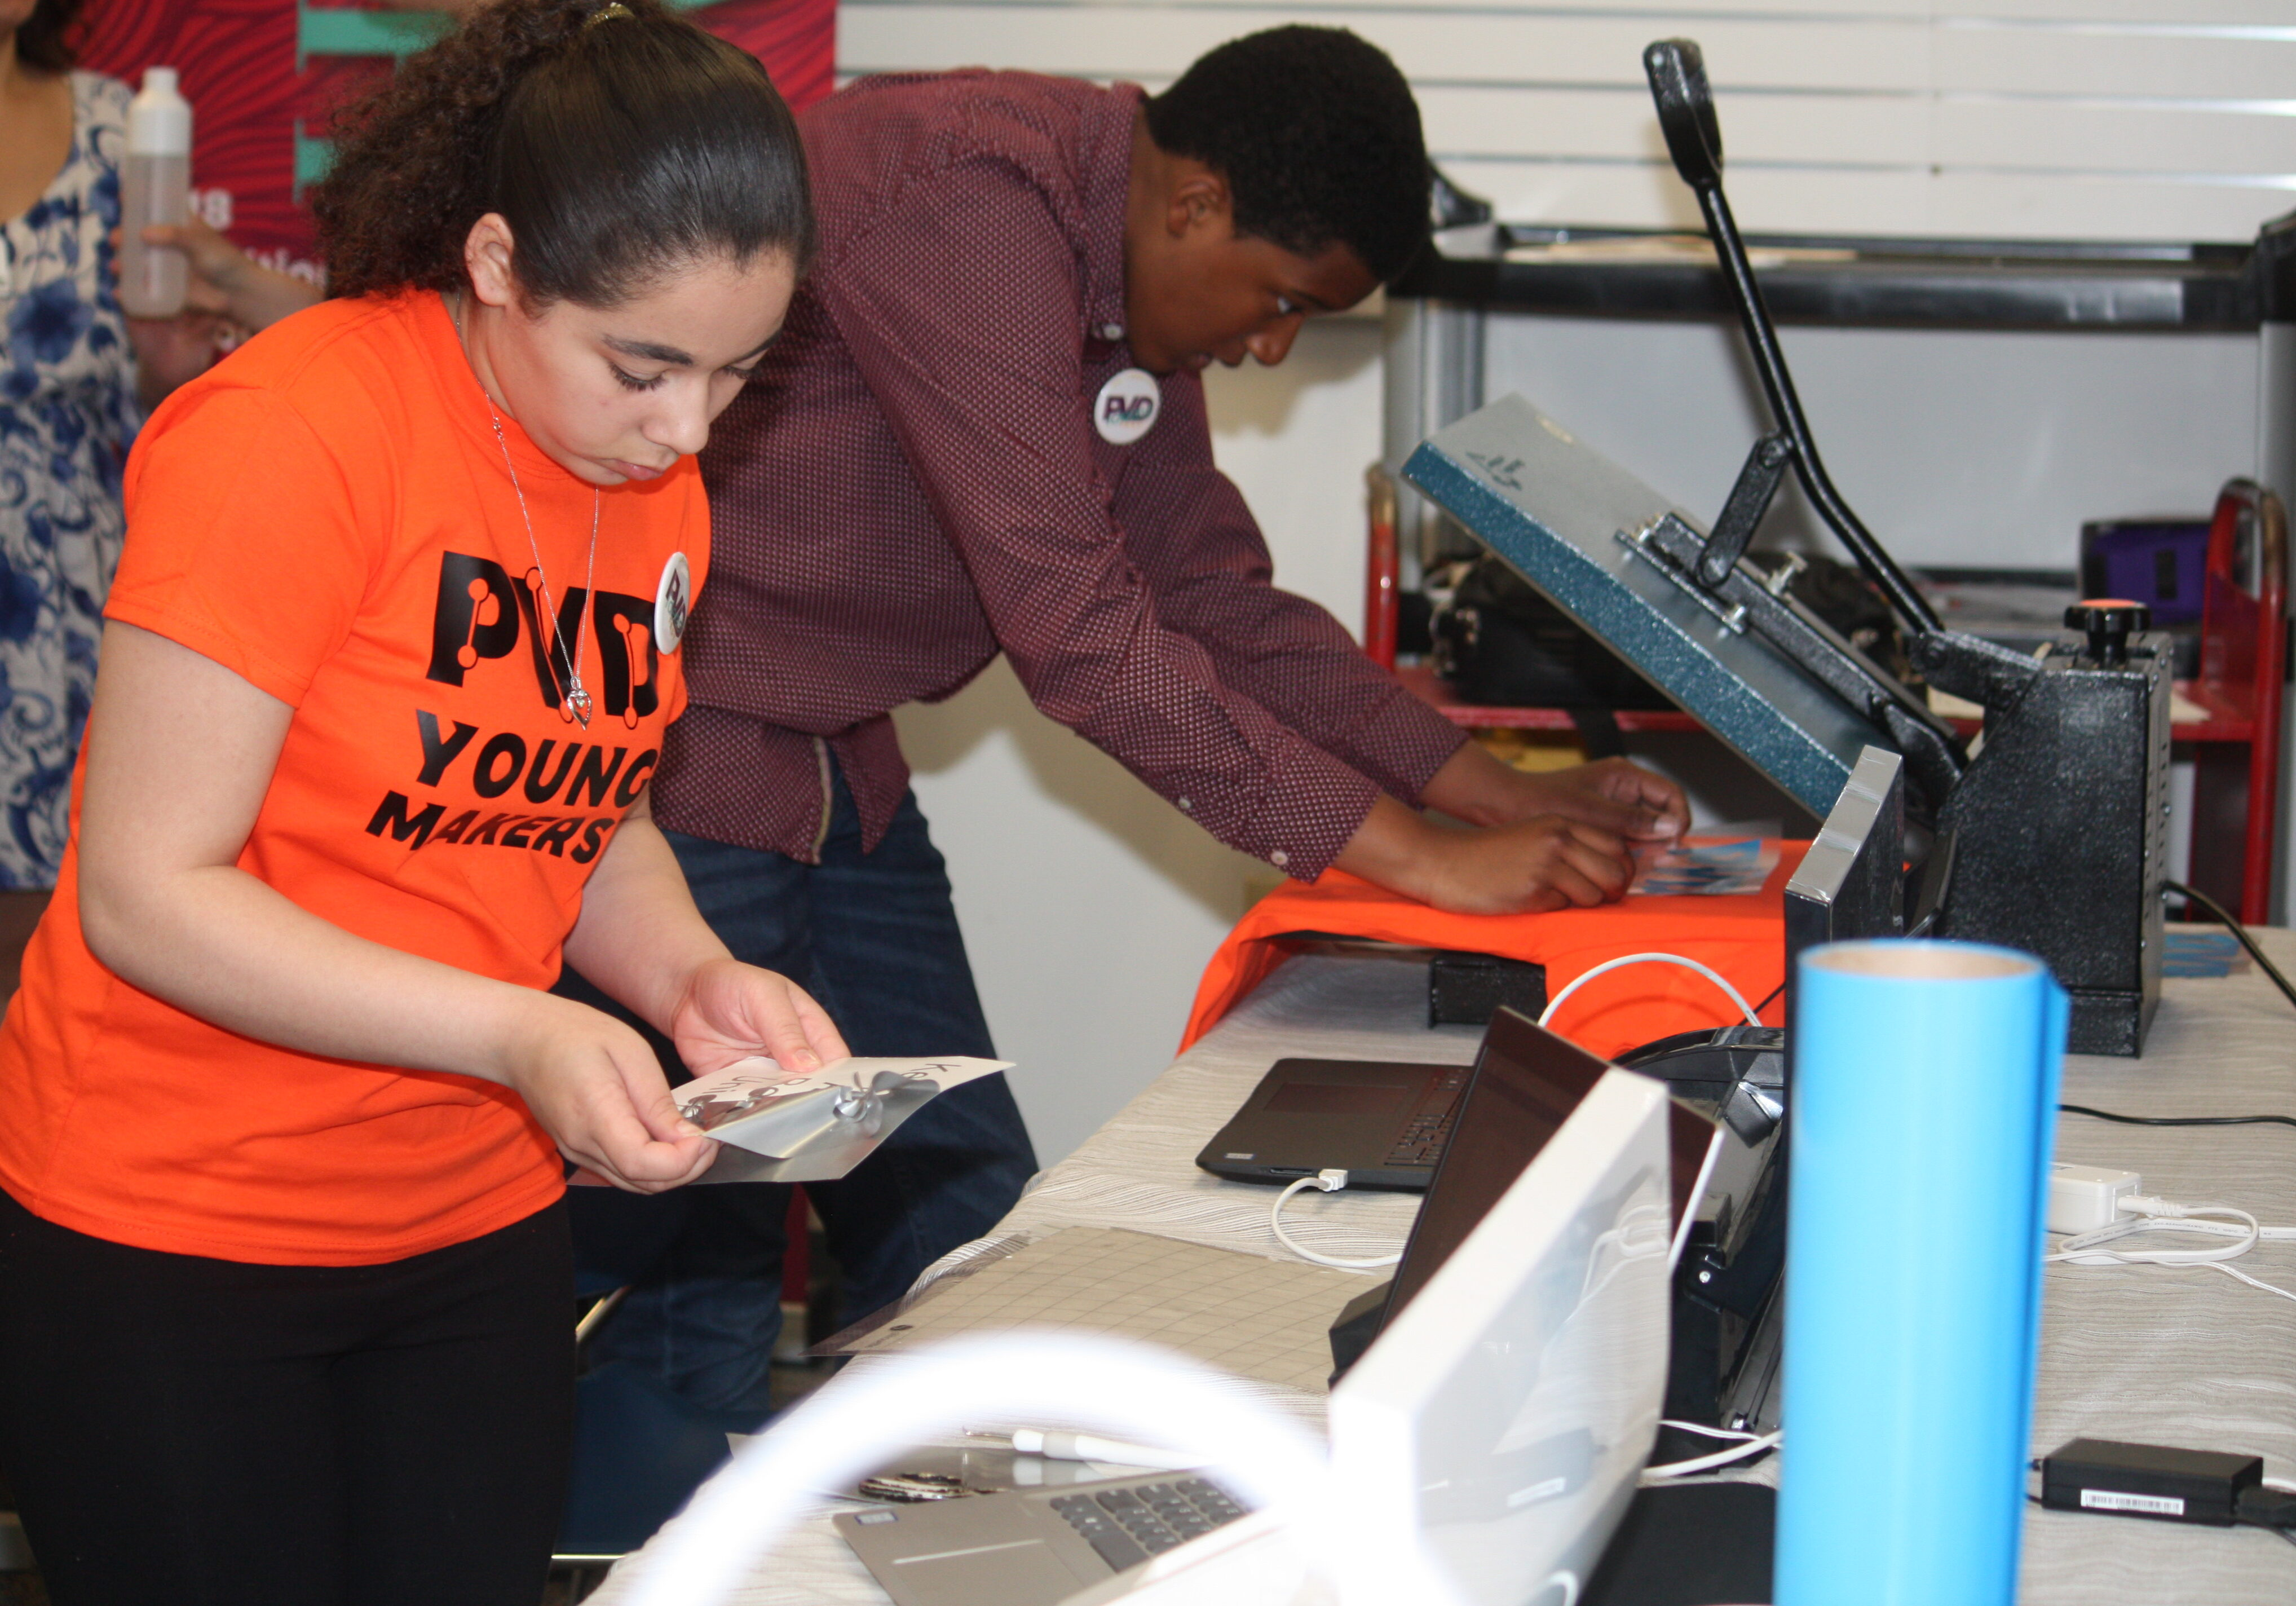 PVD Young Makers